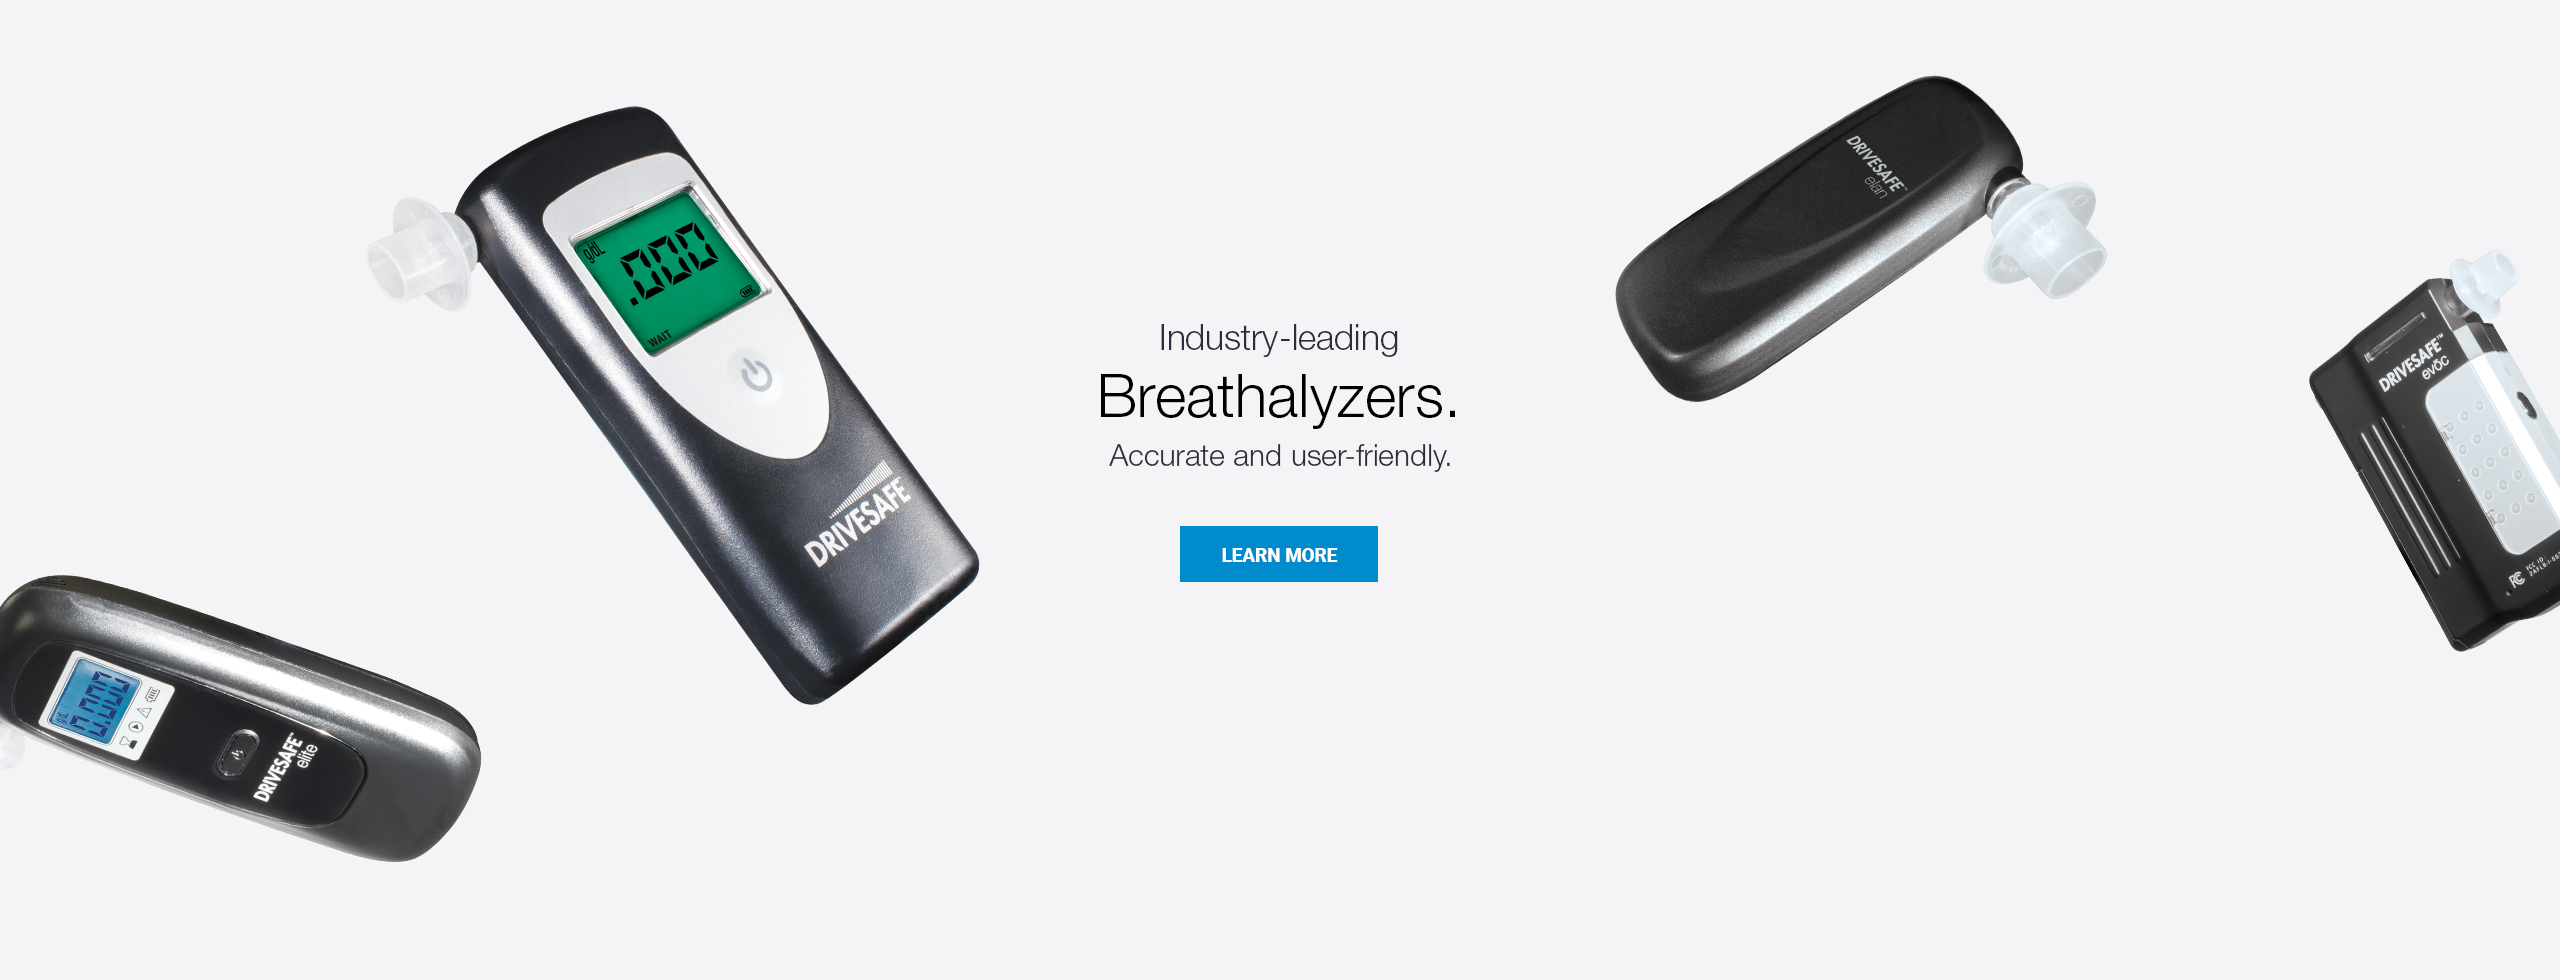 Industry-leading breathalyzers. Accurate. User-friendly.